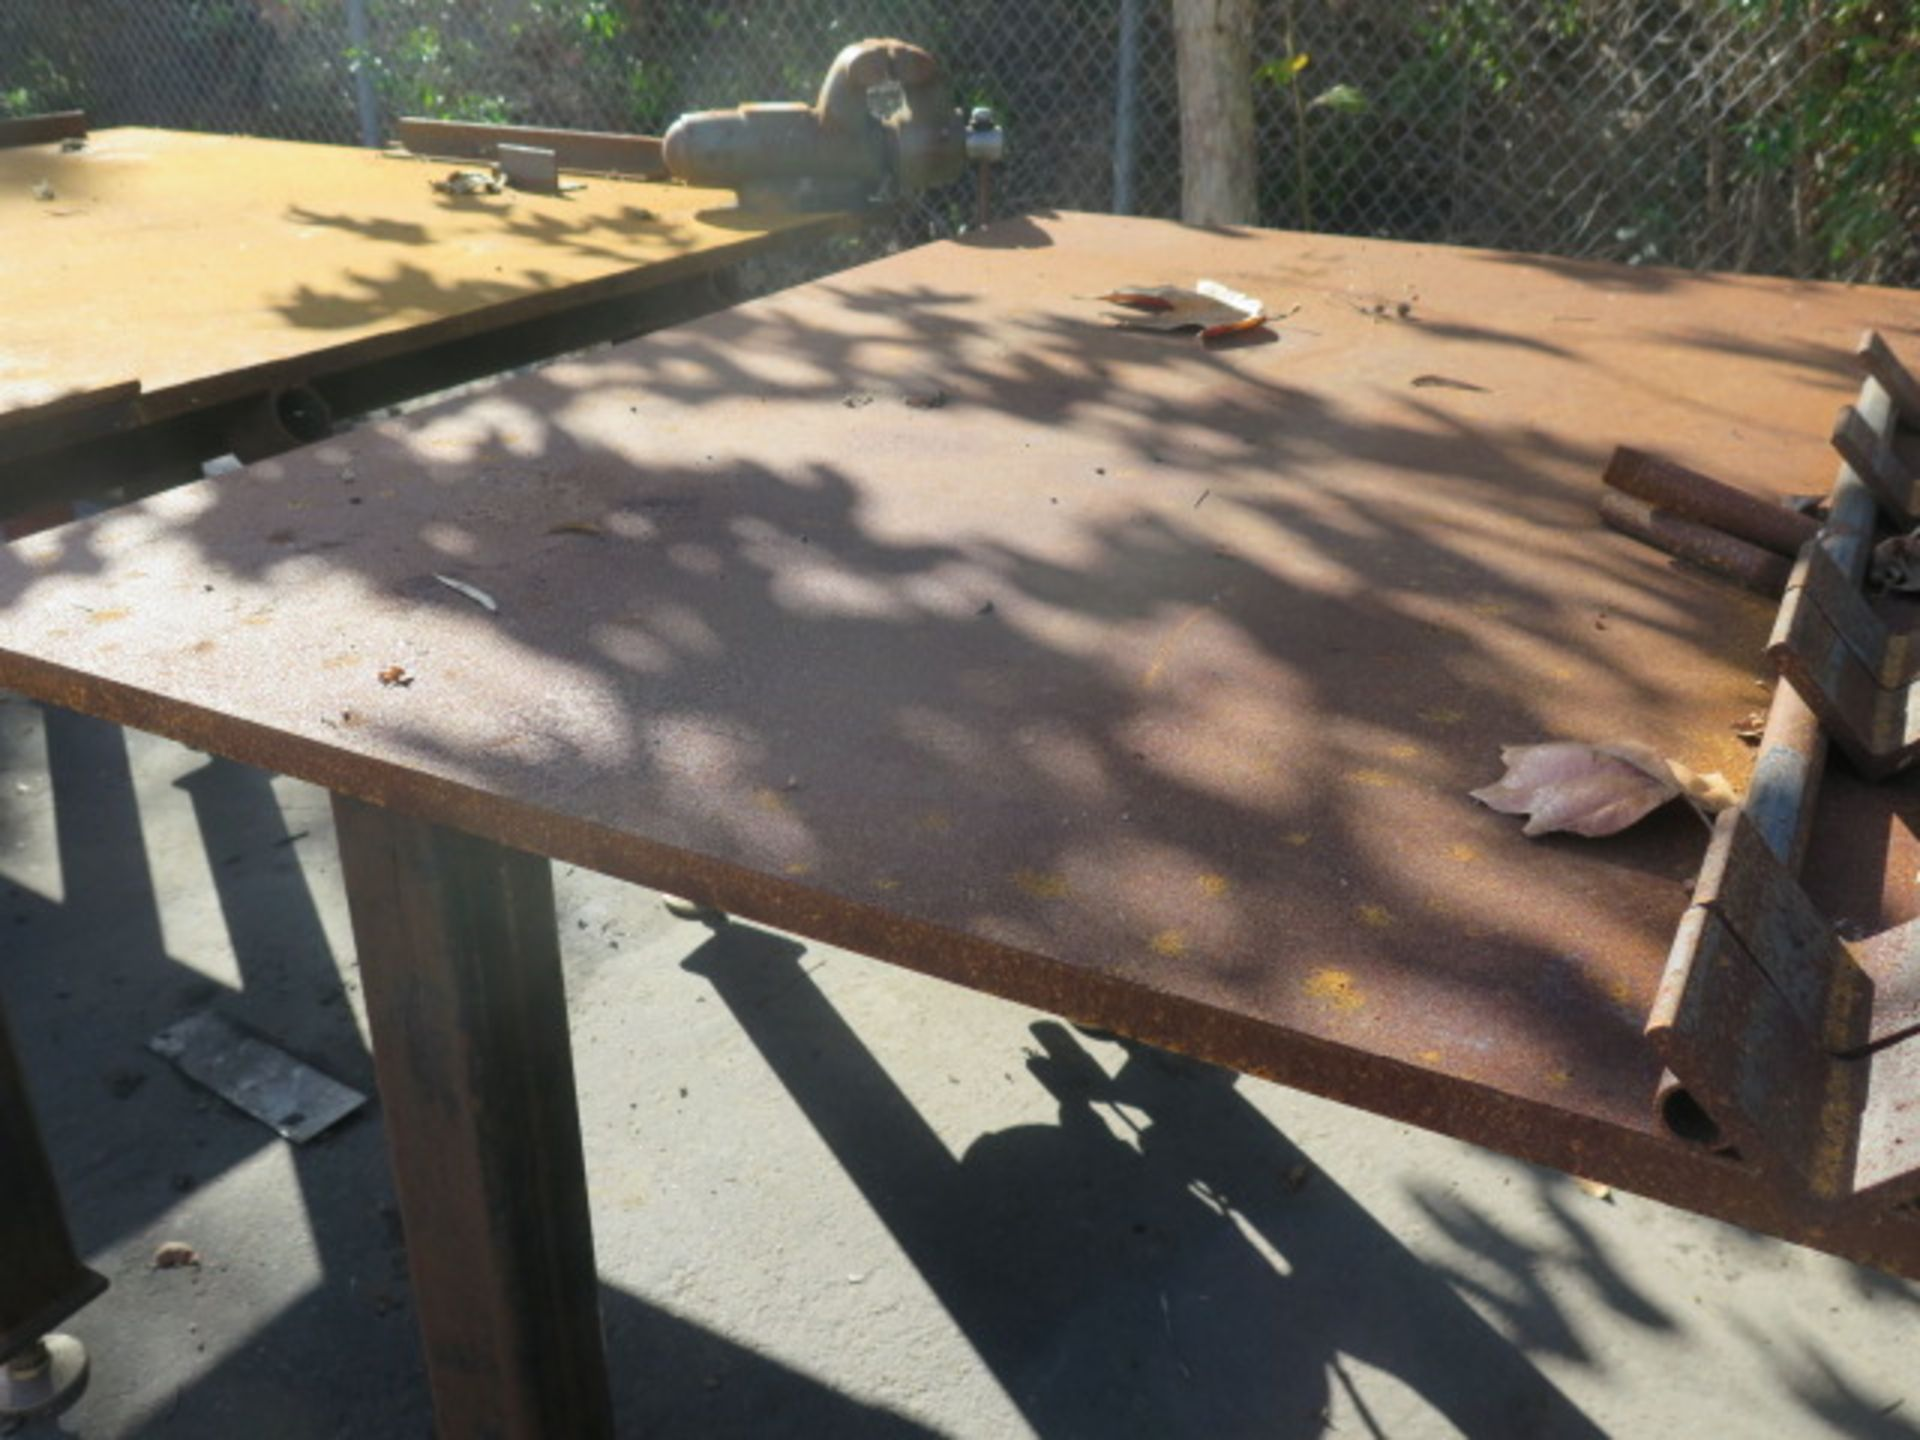 """5' x 5' x 1"""" Steel Welding Table w/ Wilton 6"""" Bench Vise (SOLD AS-IS - NO WARRANTY) - Image 2 of 8"""